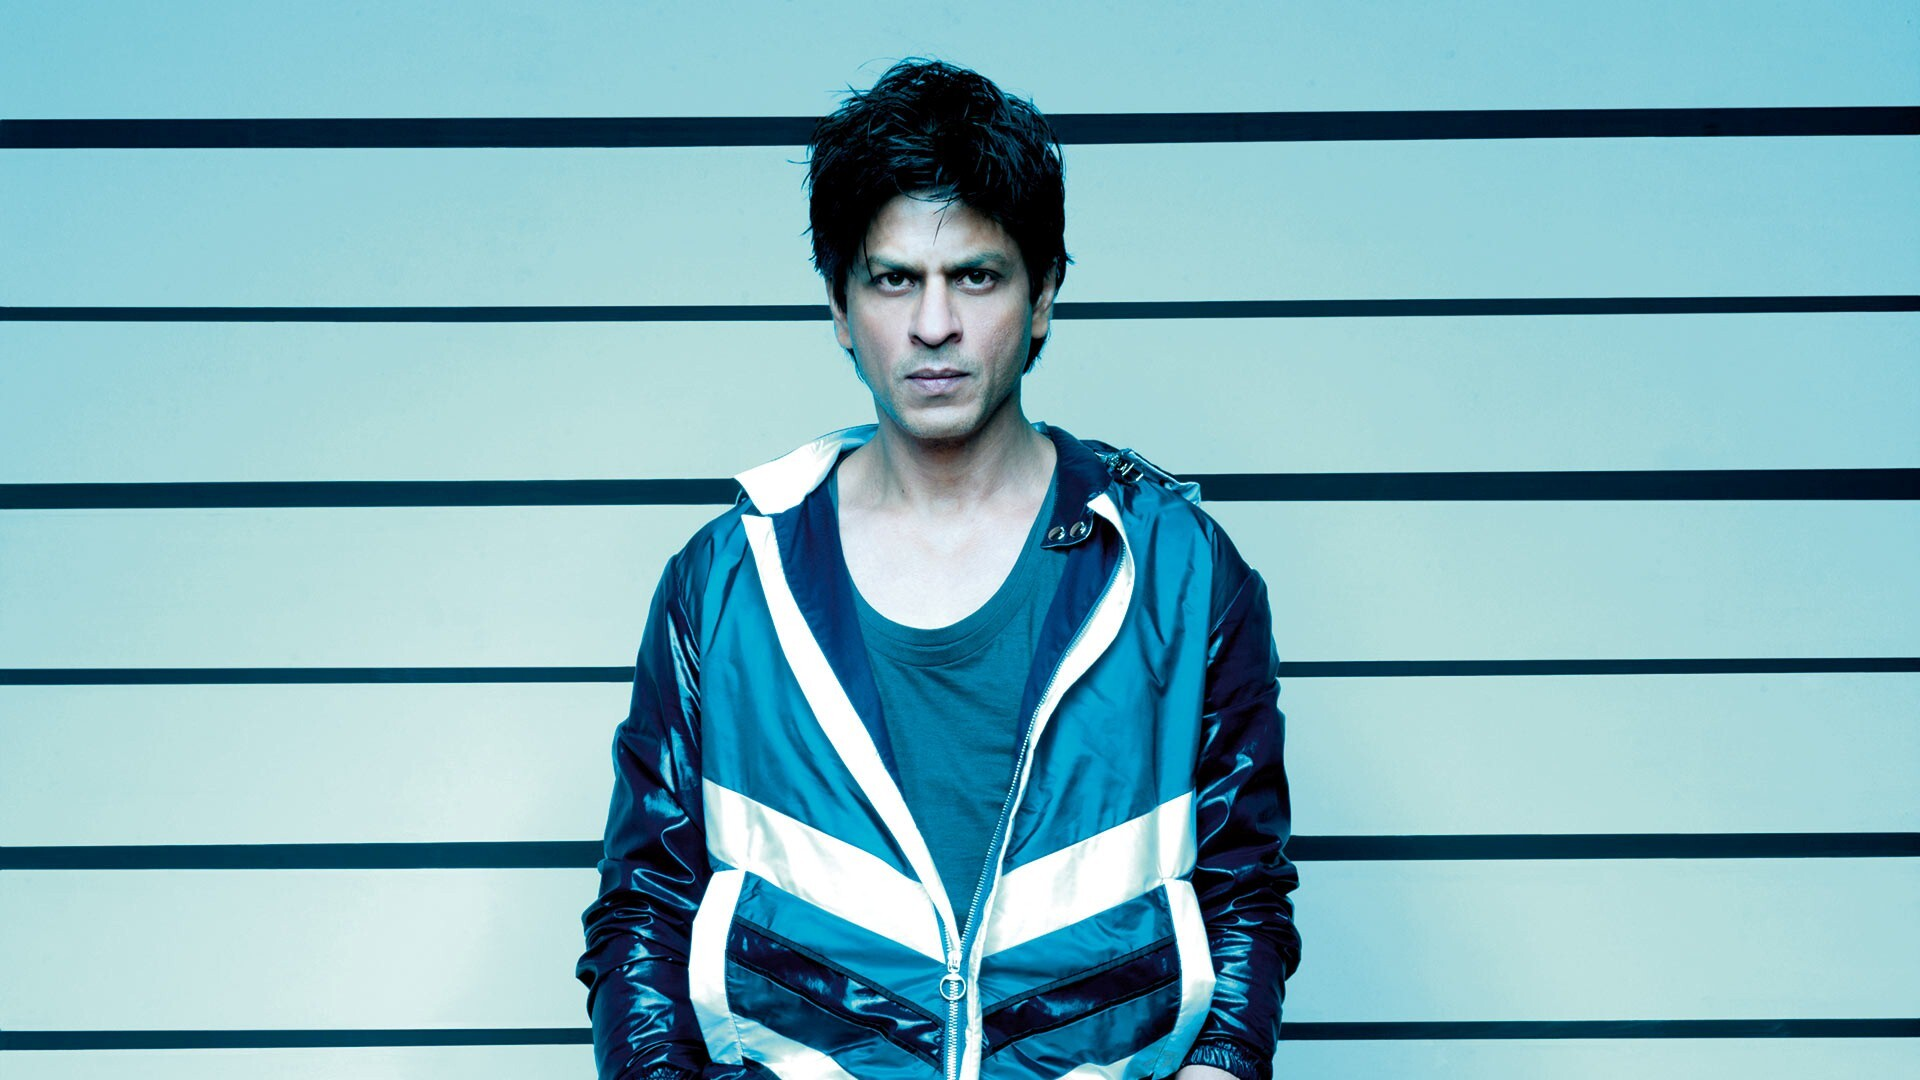 bollywood actor shah rukh khan hd photo | hd wallpapers